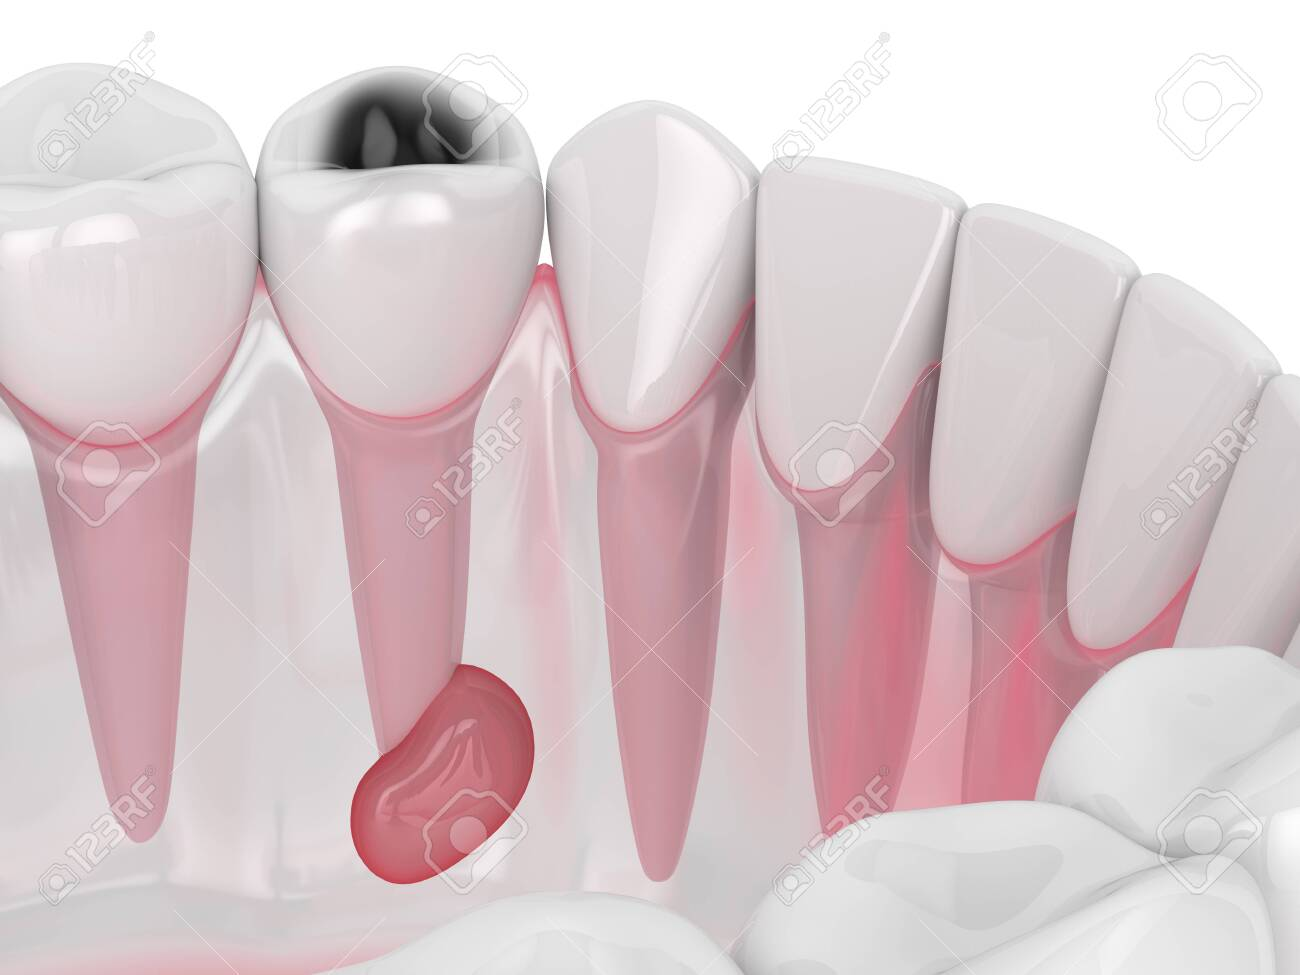 3d render of jaw with tooth cavity and cyst. Dental problem concept. - 134438432